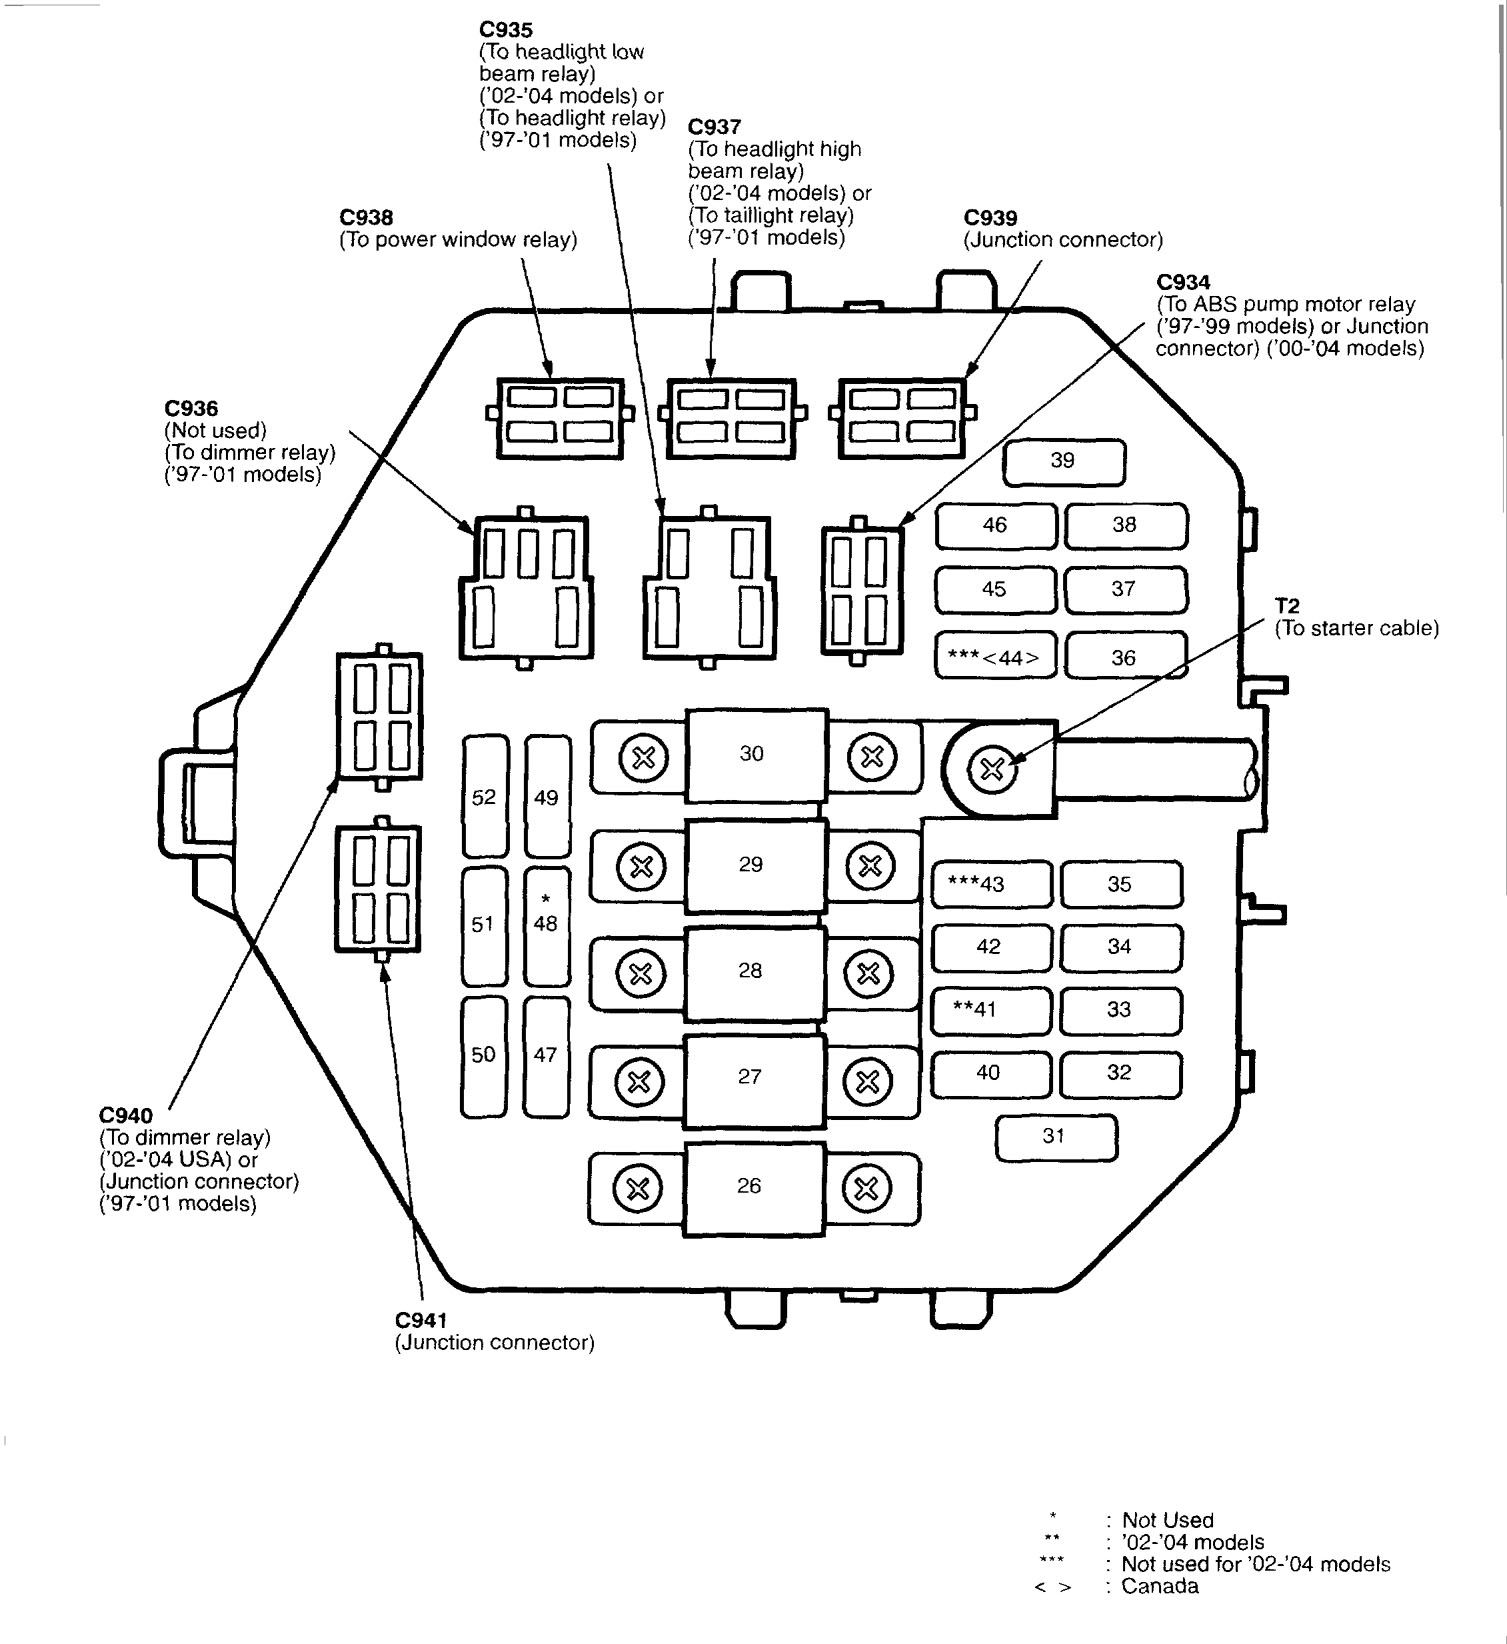 Acura Nsx 1997 2004 Wiring Diagrams Fuse Panel Carknowledge F450 Diagram